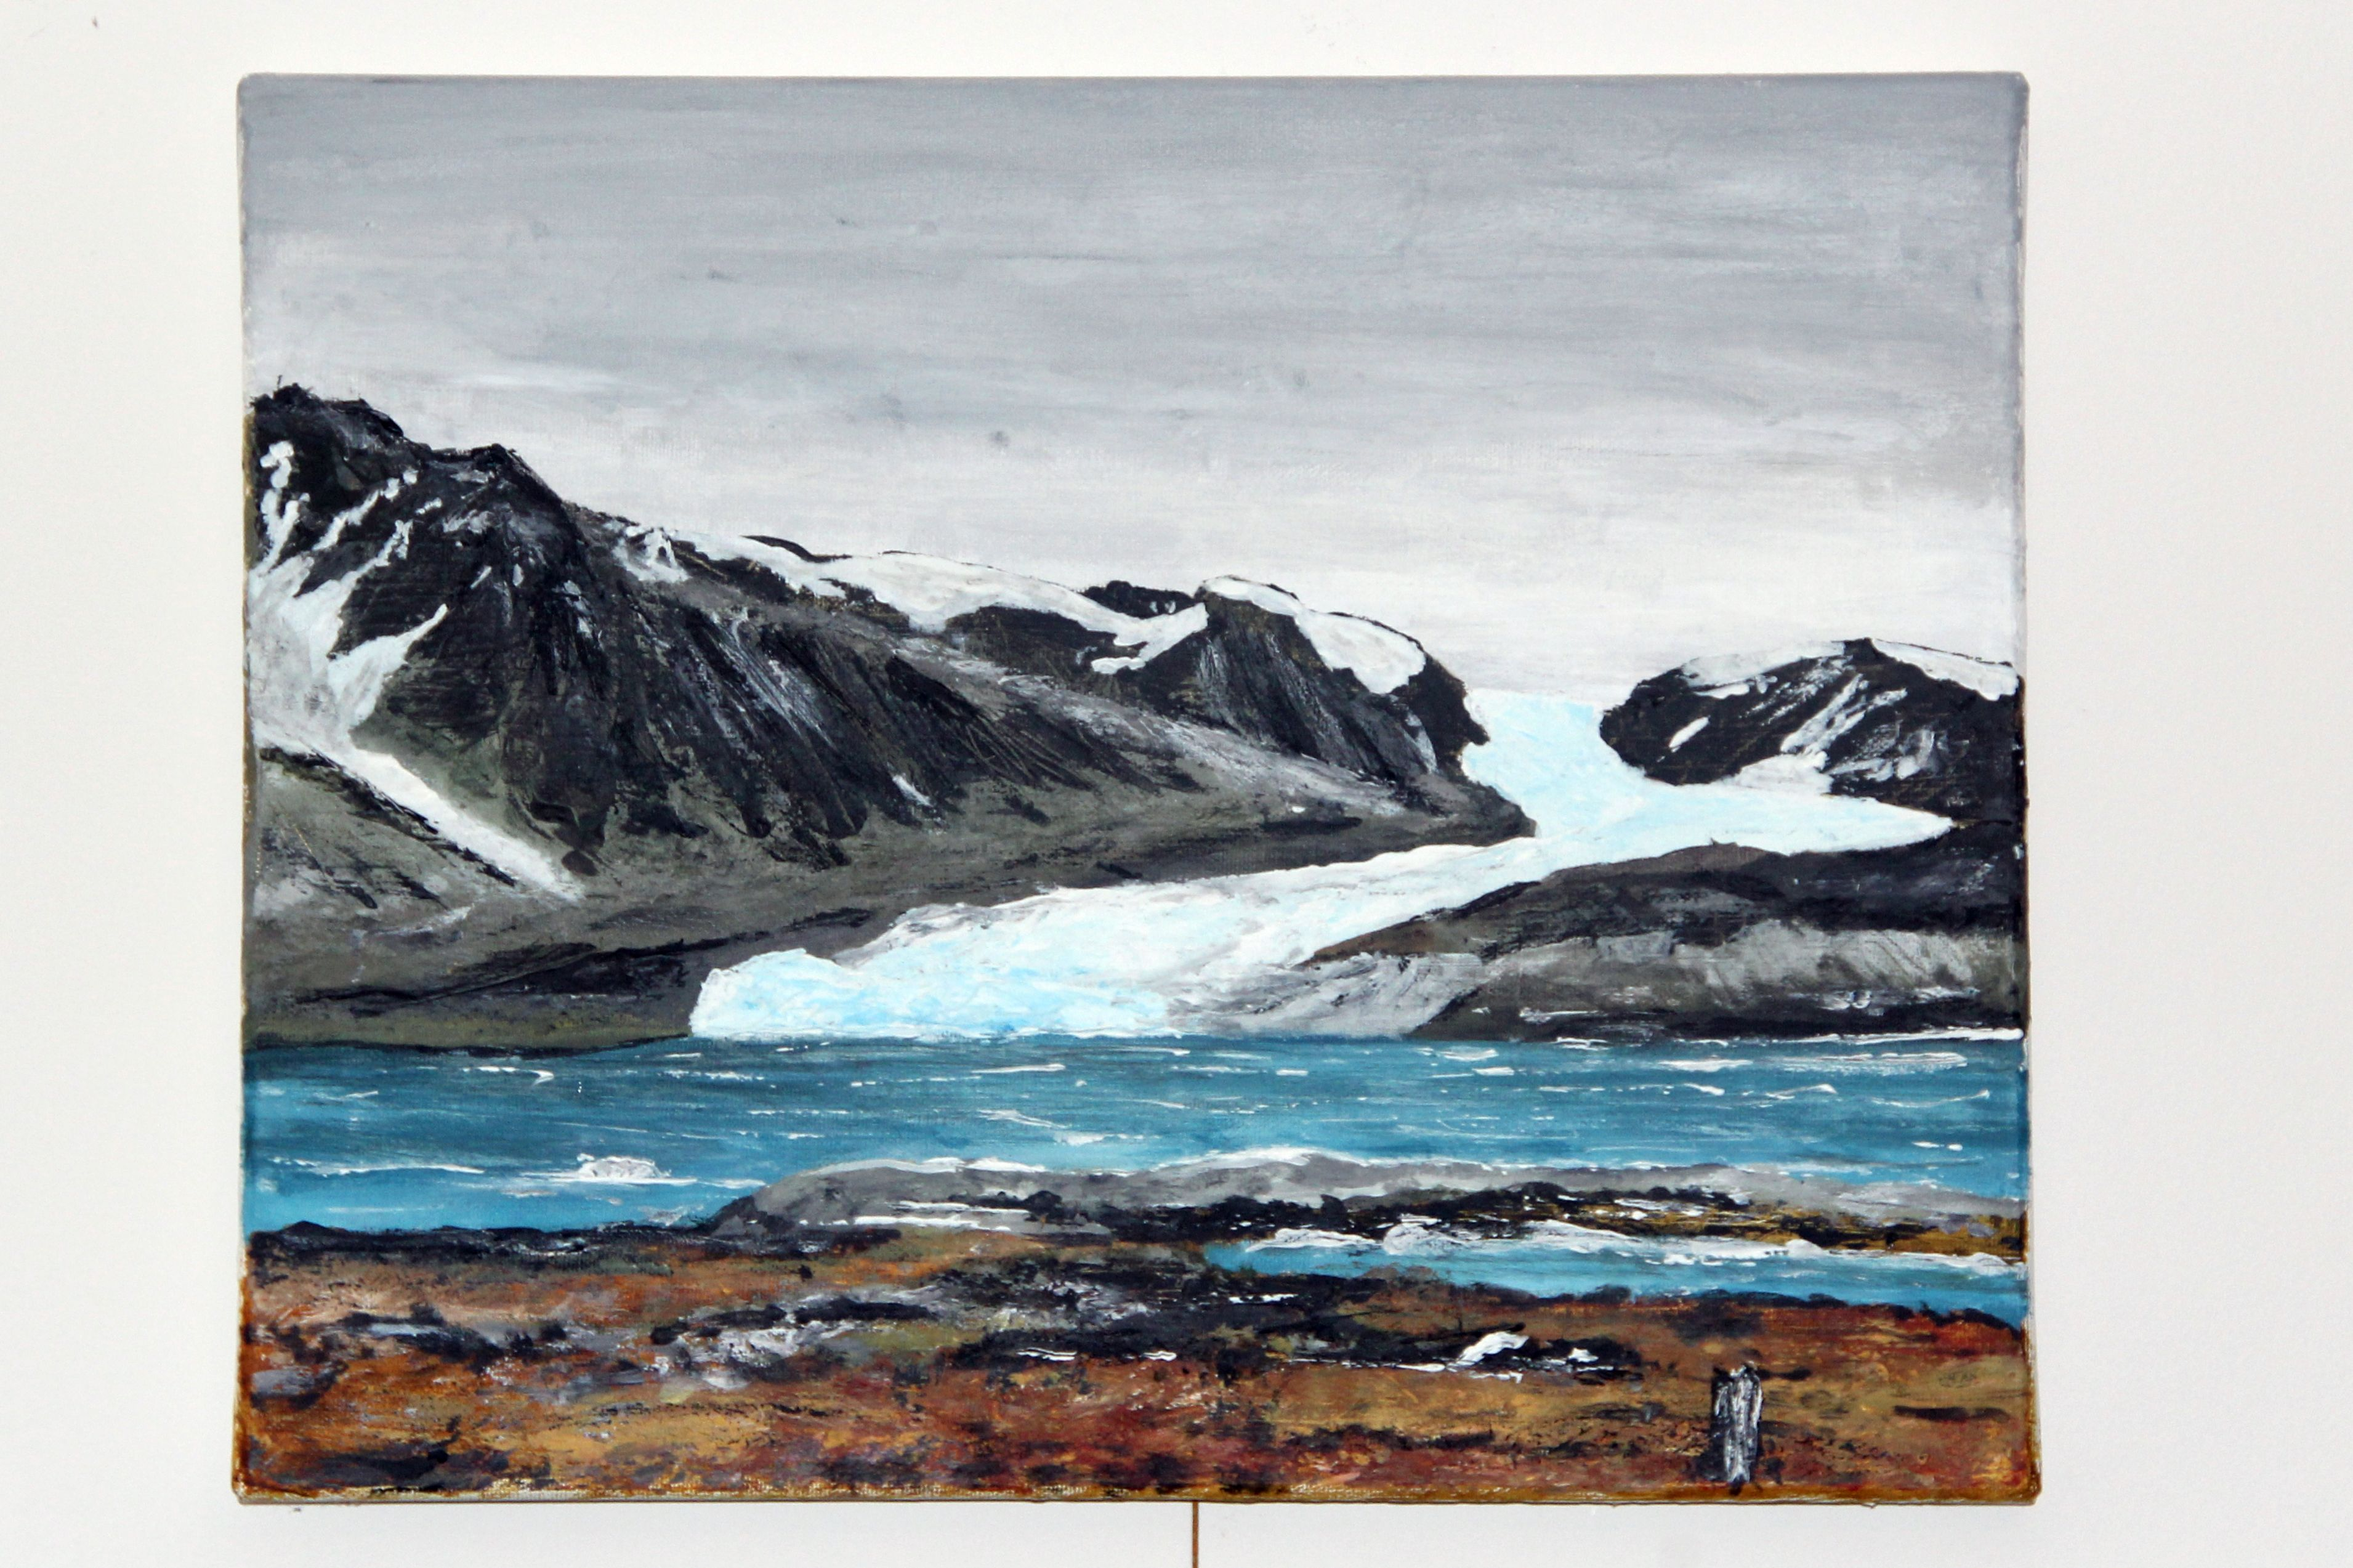 Conwaybreen, Svalbard on a cold summer day, acrylic on canvas.